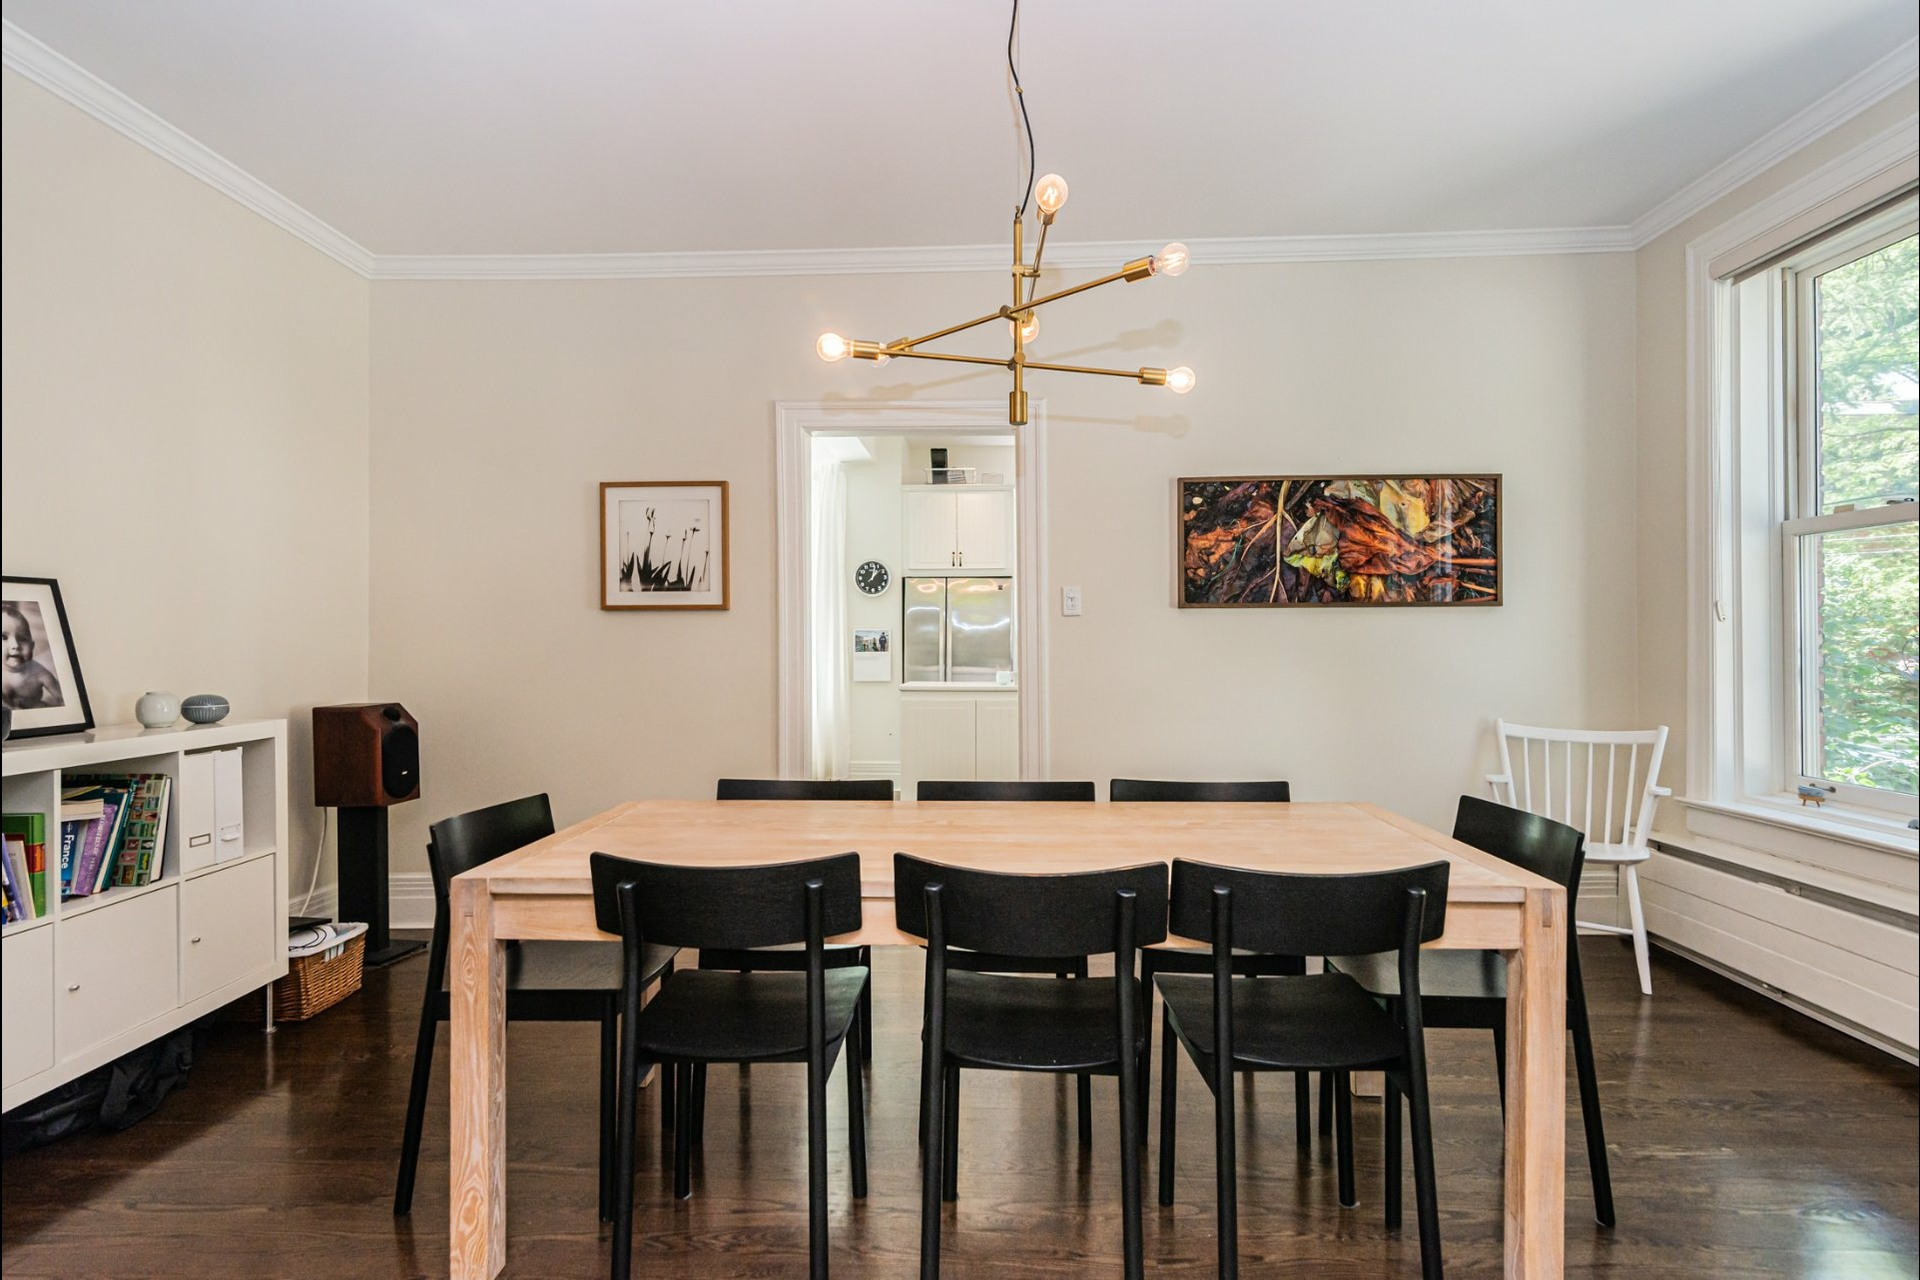 image 11 - House For rent Westmount - 8 rooms